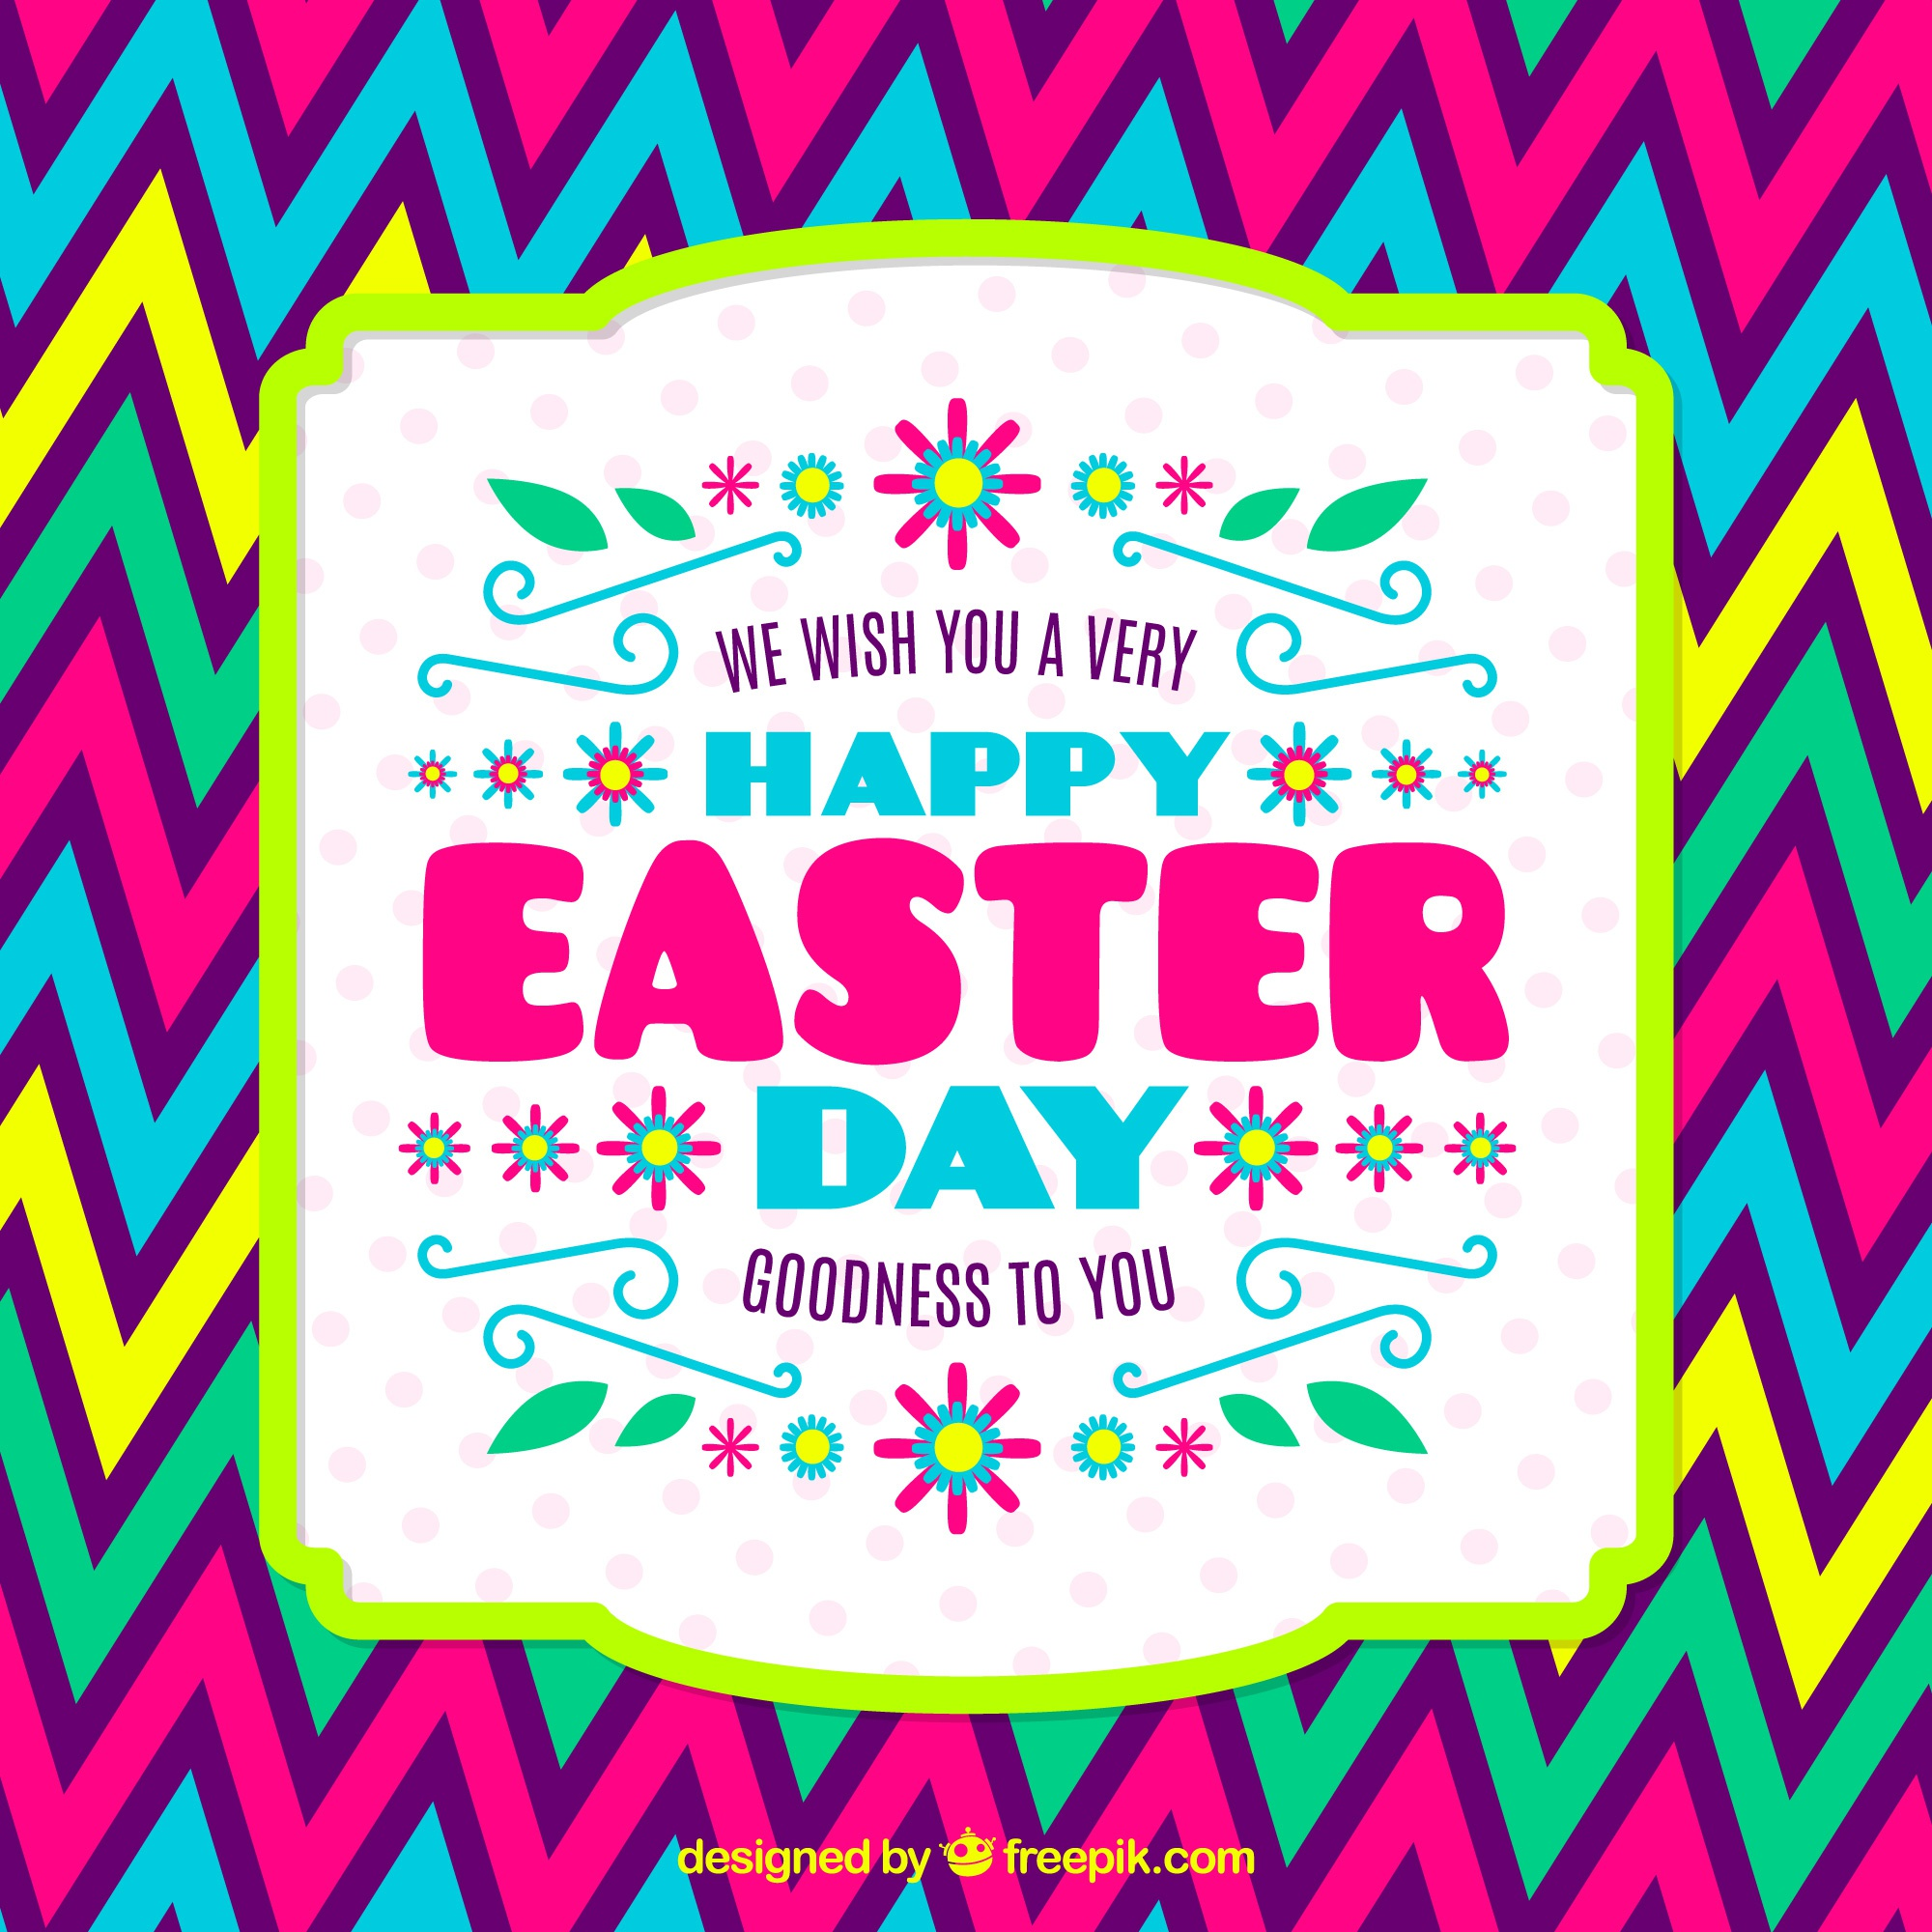 Colorful easter card with zigzag lines